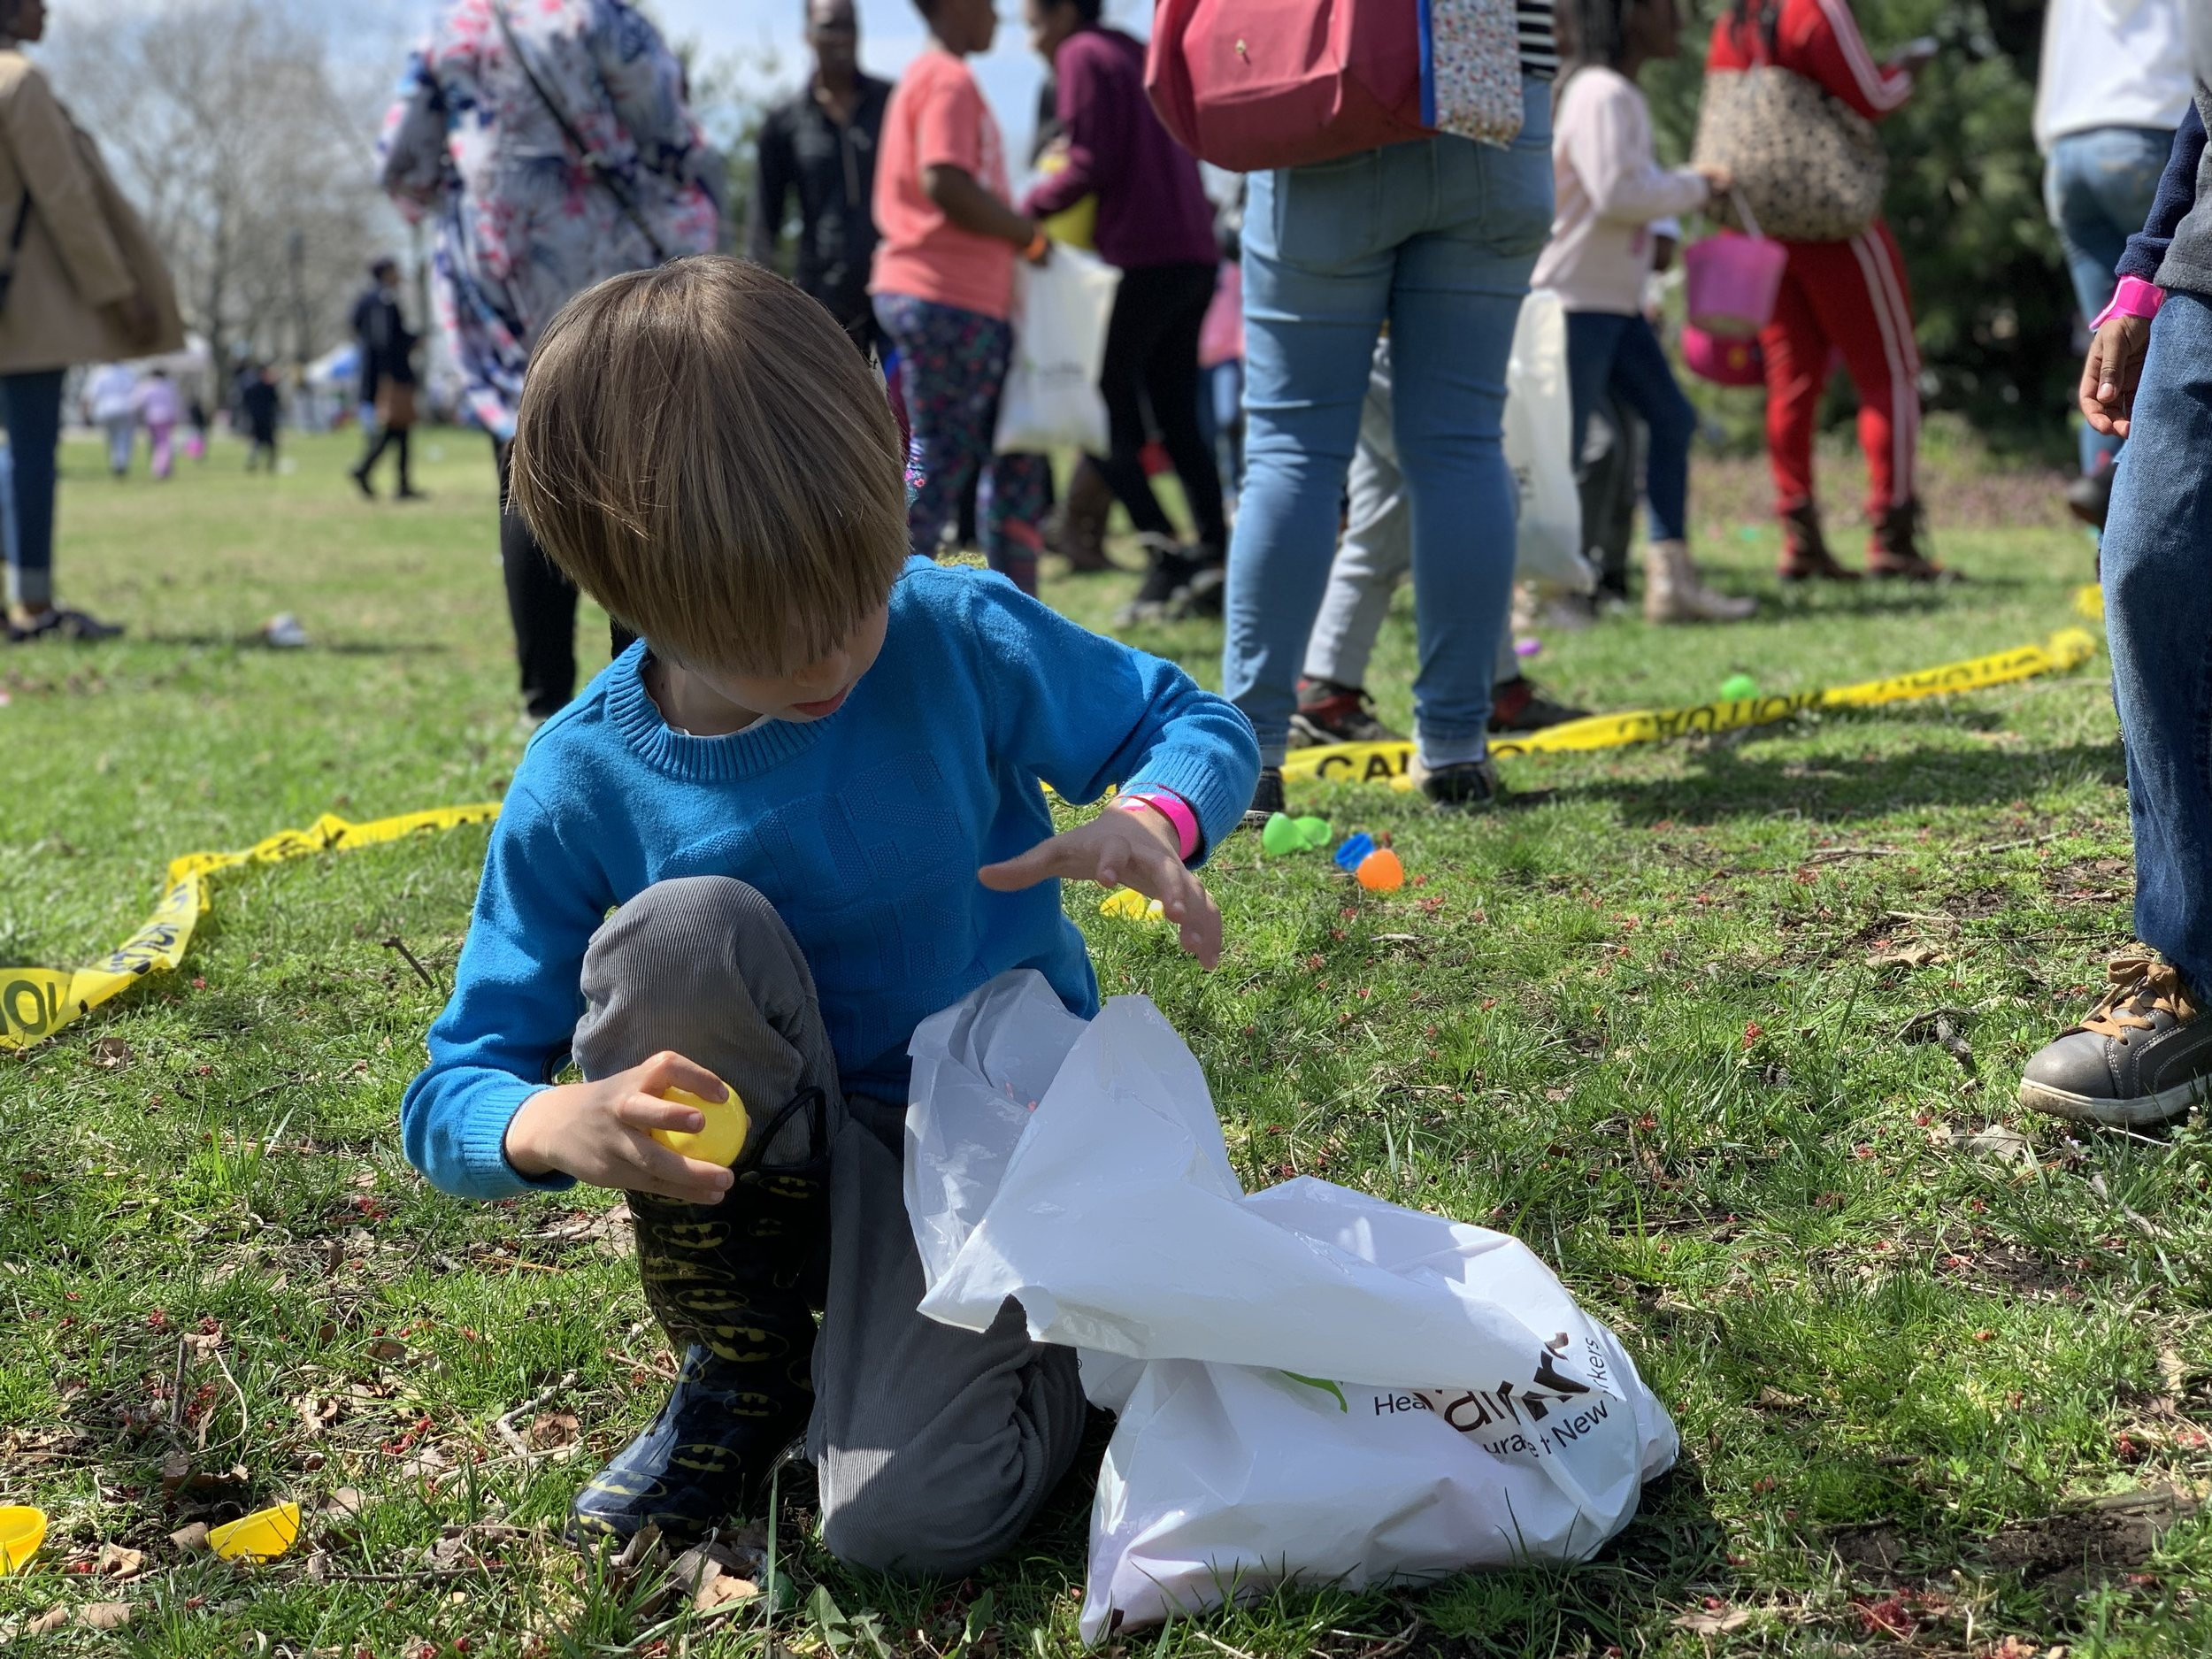 SD-Easter-Egg-Hunt_Sergio-getting-eggs_April-2019.jpg